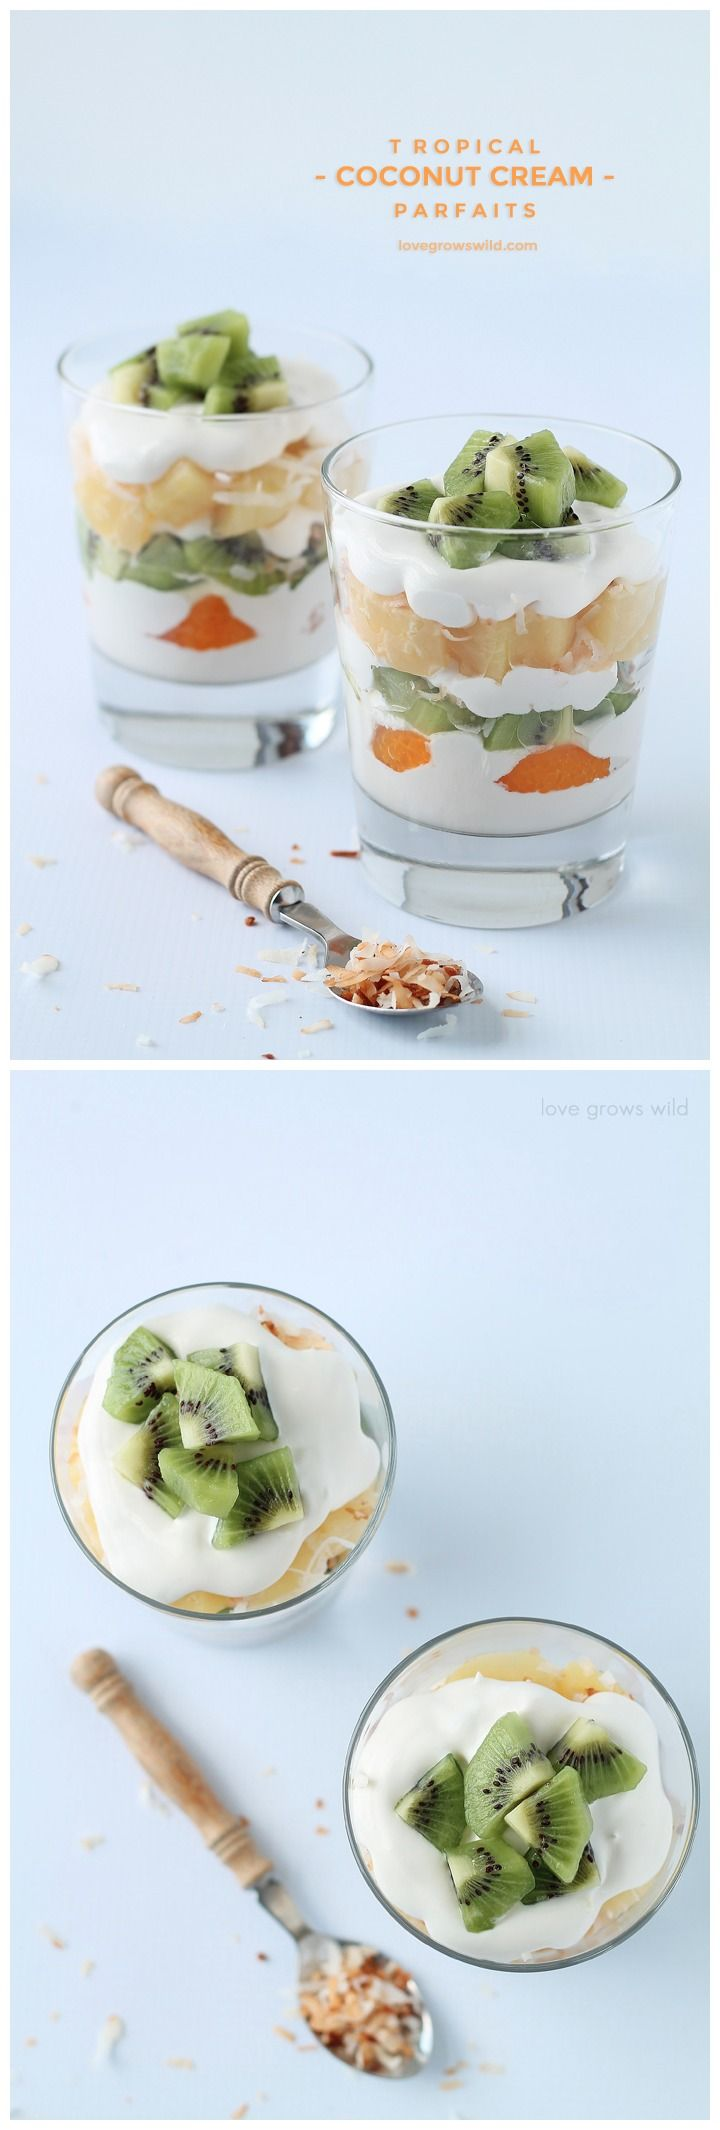 Tropical Coconut Cream Parfait